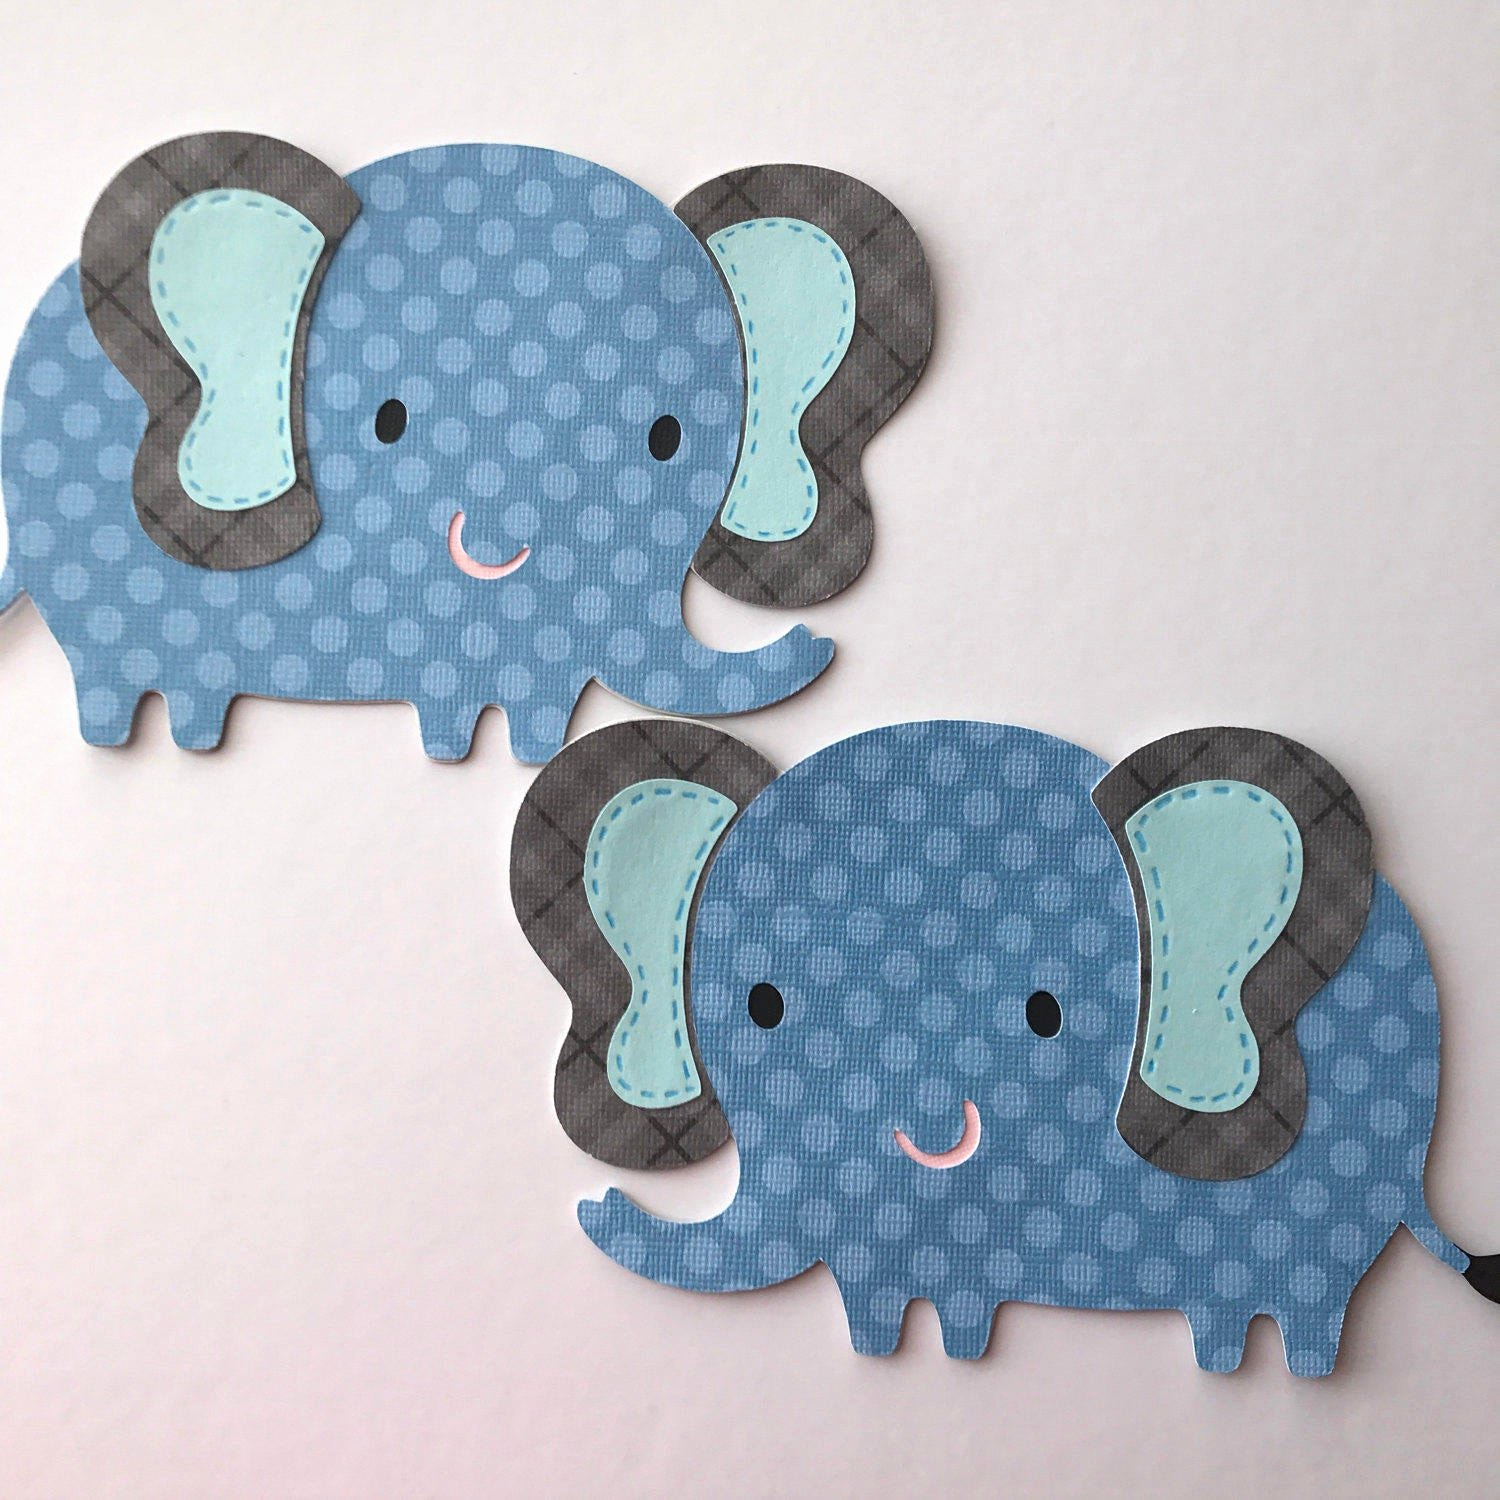 Baby Elephant Cut Outs New Elephant Cut Out Elephant Baby Shower Decor Elephant Cake